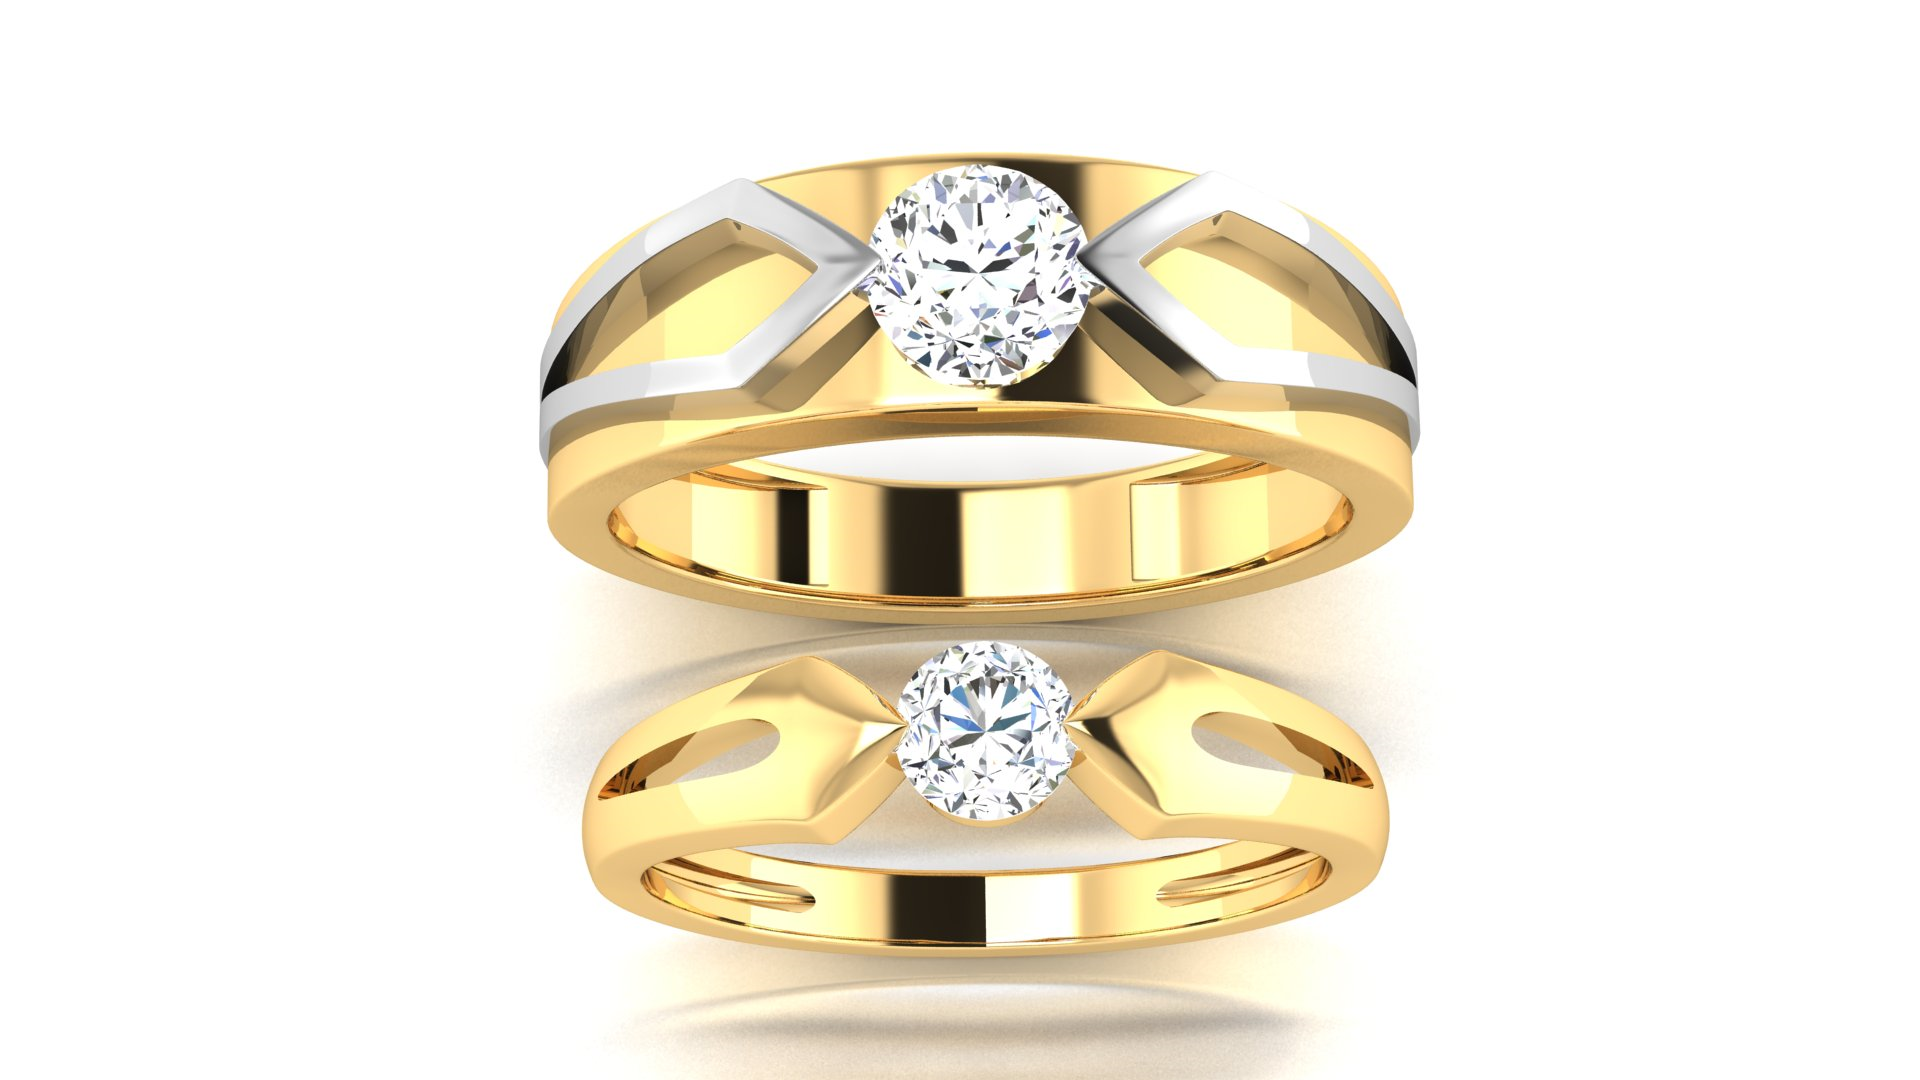 20 Carat Gold Couple Ring with Silver Metal